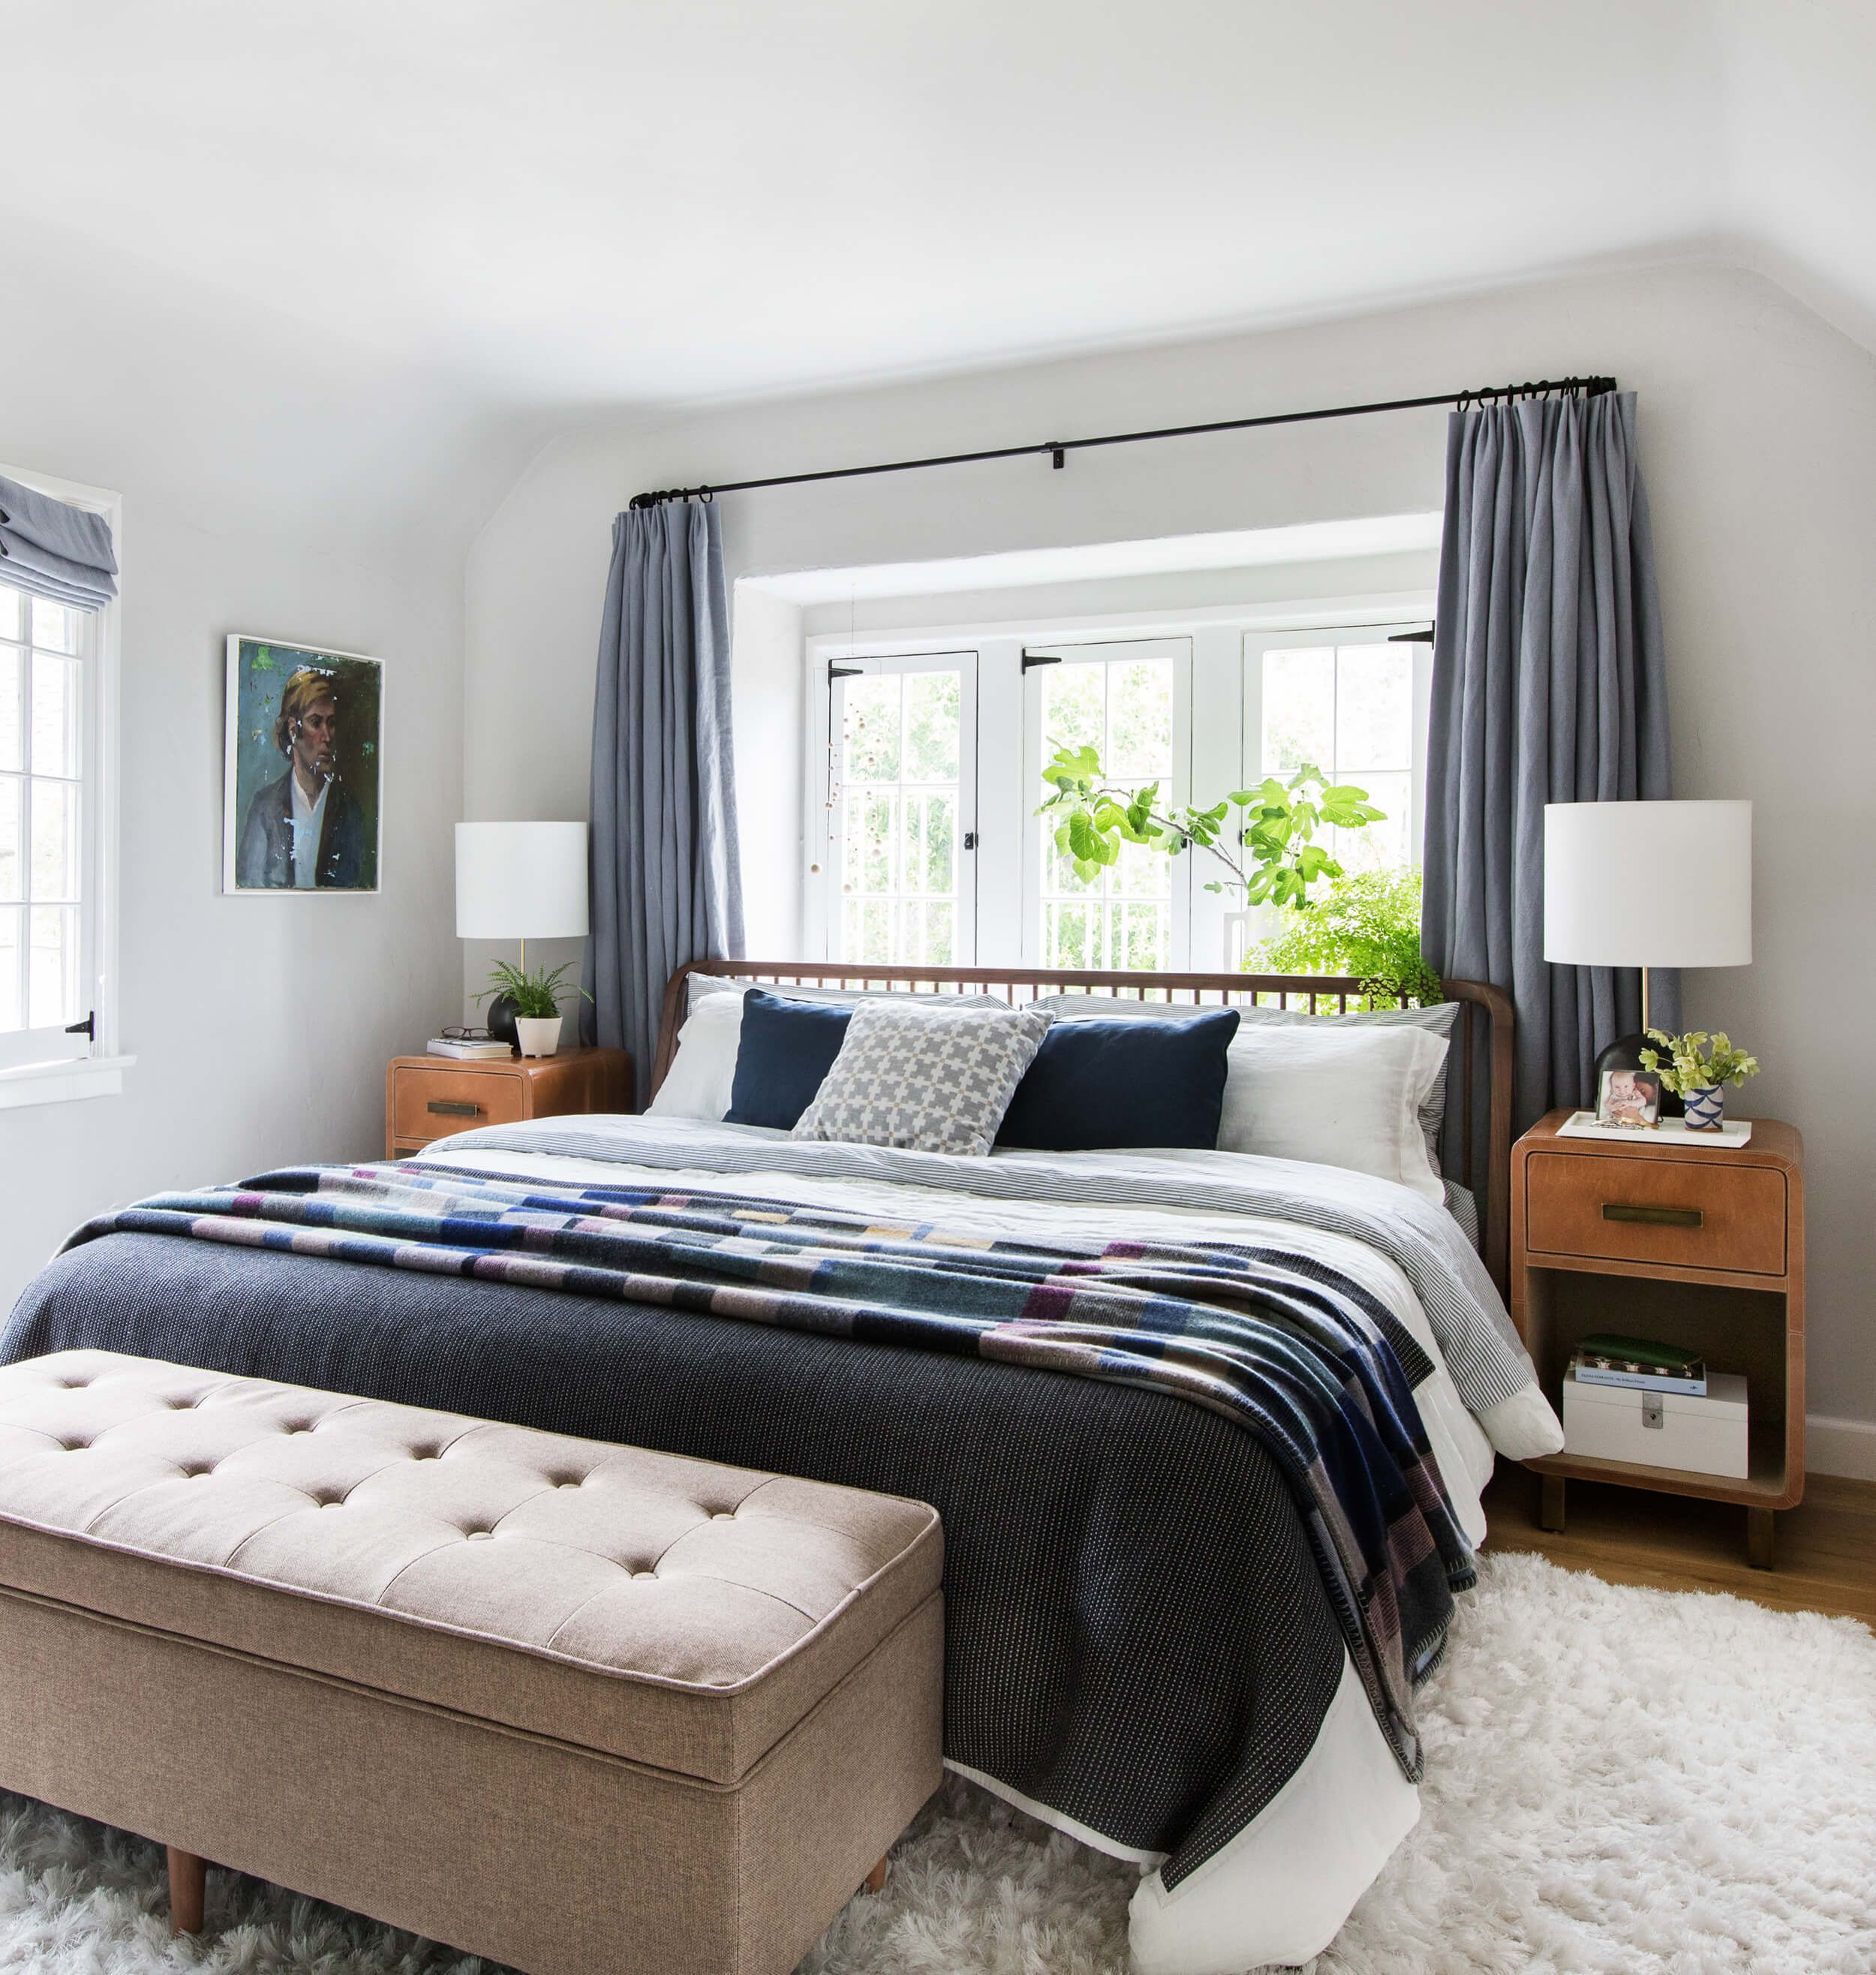 Our Master Bedroom Reveal + Get The Look